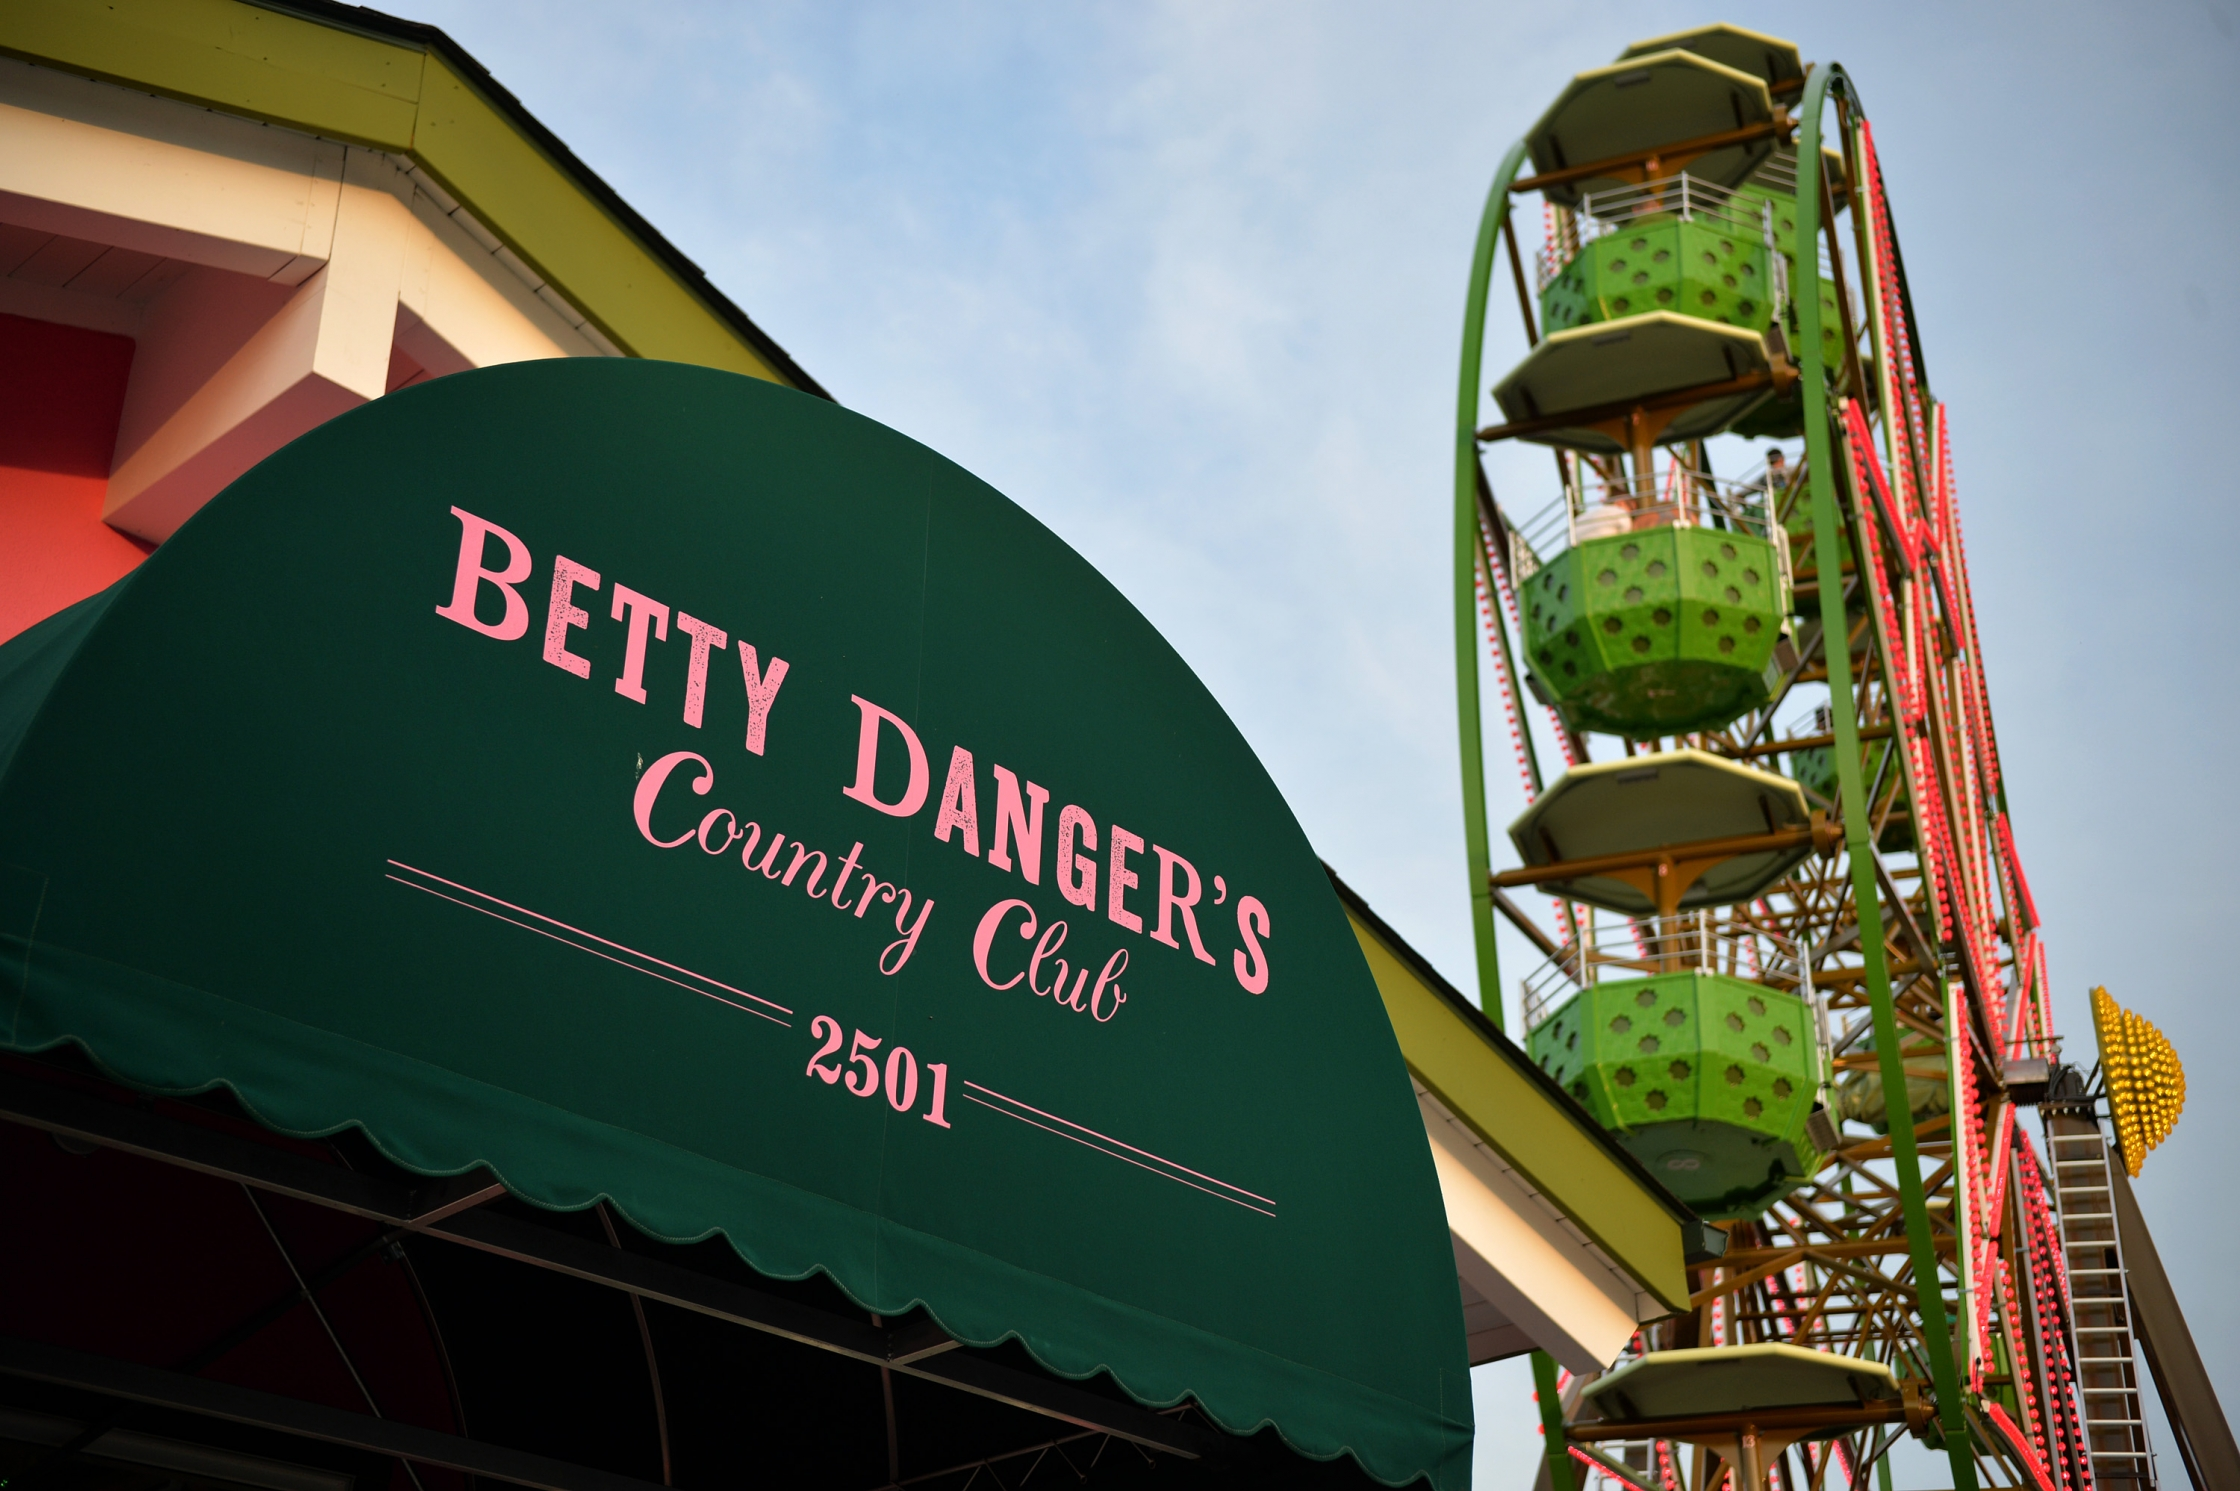 High Quality Betty Dangeru0027s Energetic Patio Atmosphere Gives Guests The Opportunity To  Ride A Ferris Wheel Or Mini Golf, While Enjoying One Of The Restaurantu0027s  Beloved ...